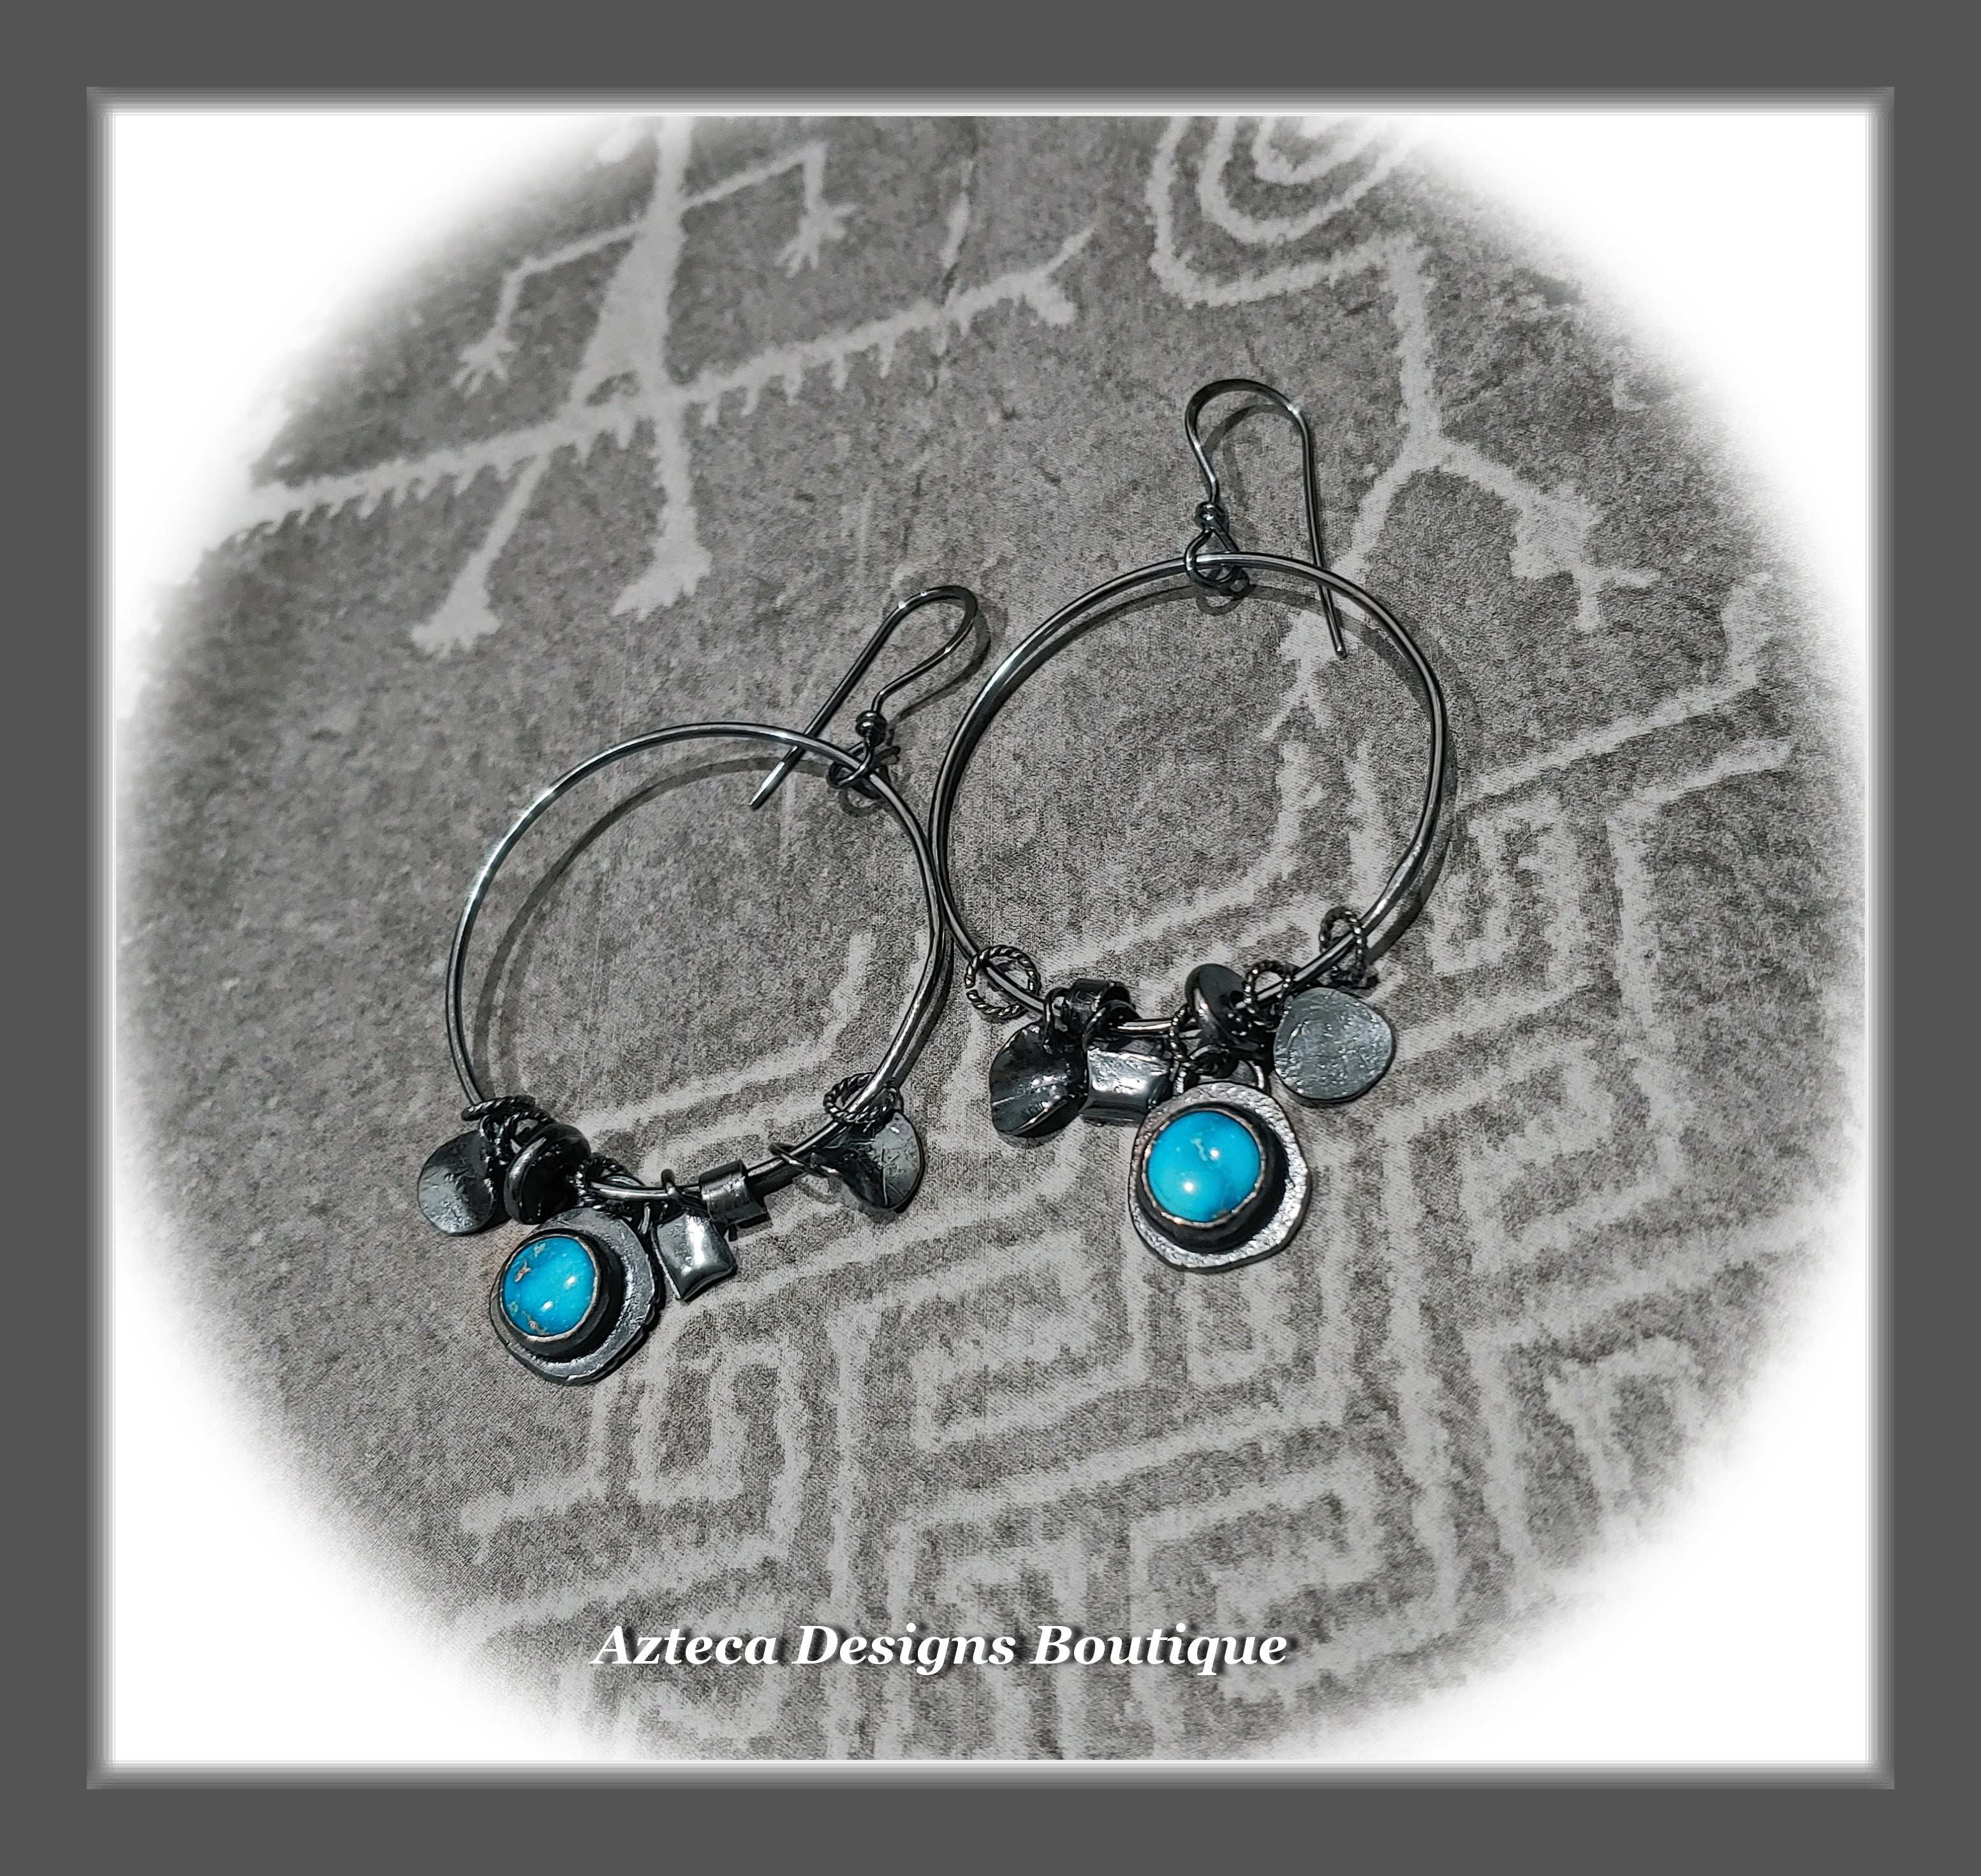 RESERVED FOR SANDY Blackened Silver+Sonoran Rose Turquoise+Hand Fabricated Charm Hoop Earrings